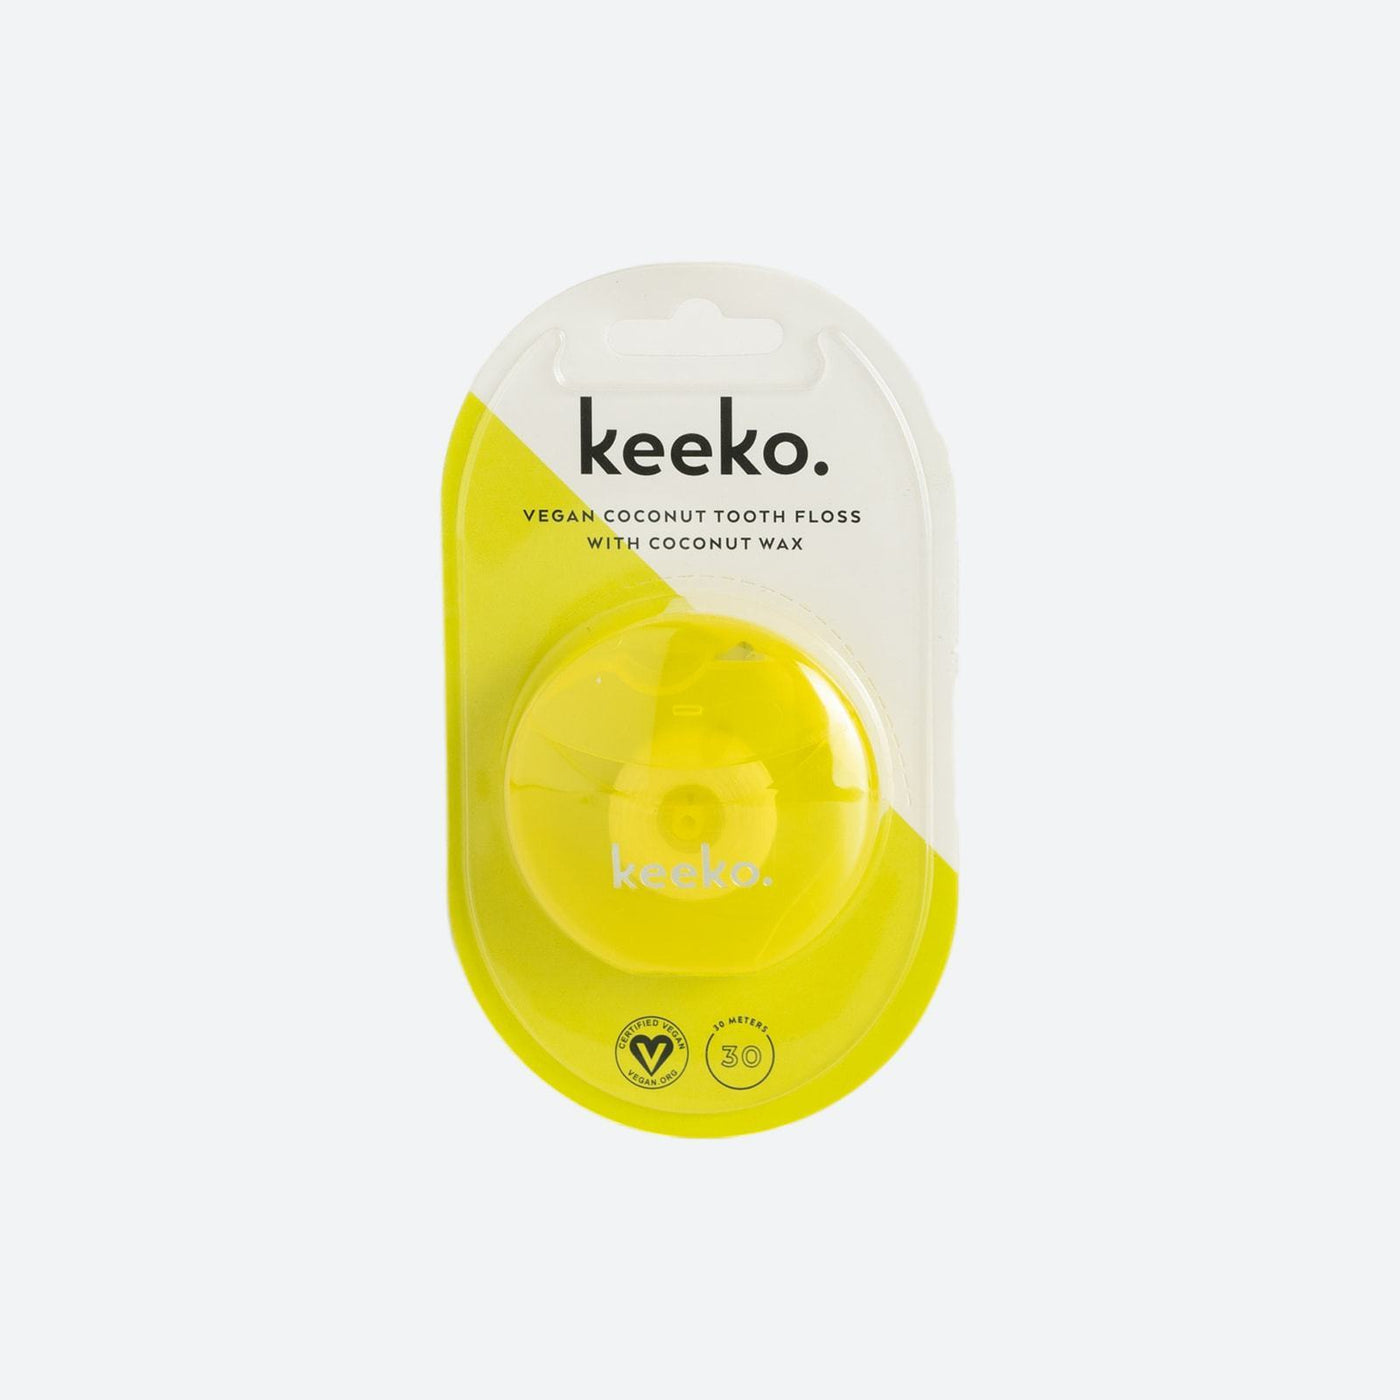 Keeko coconut tooth floss